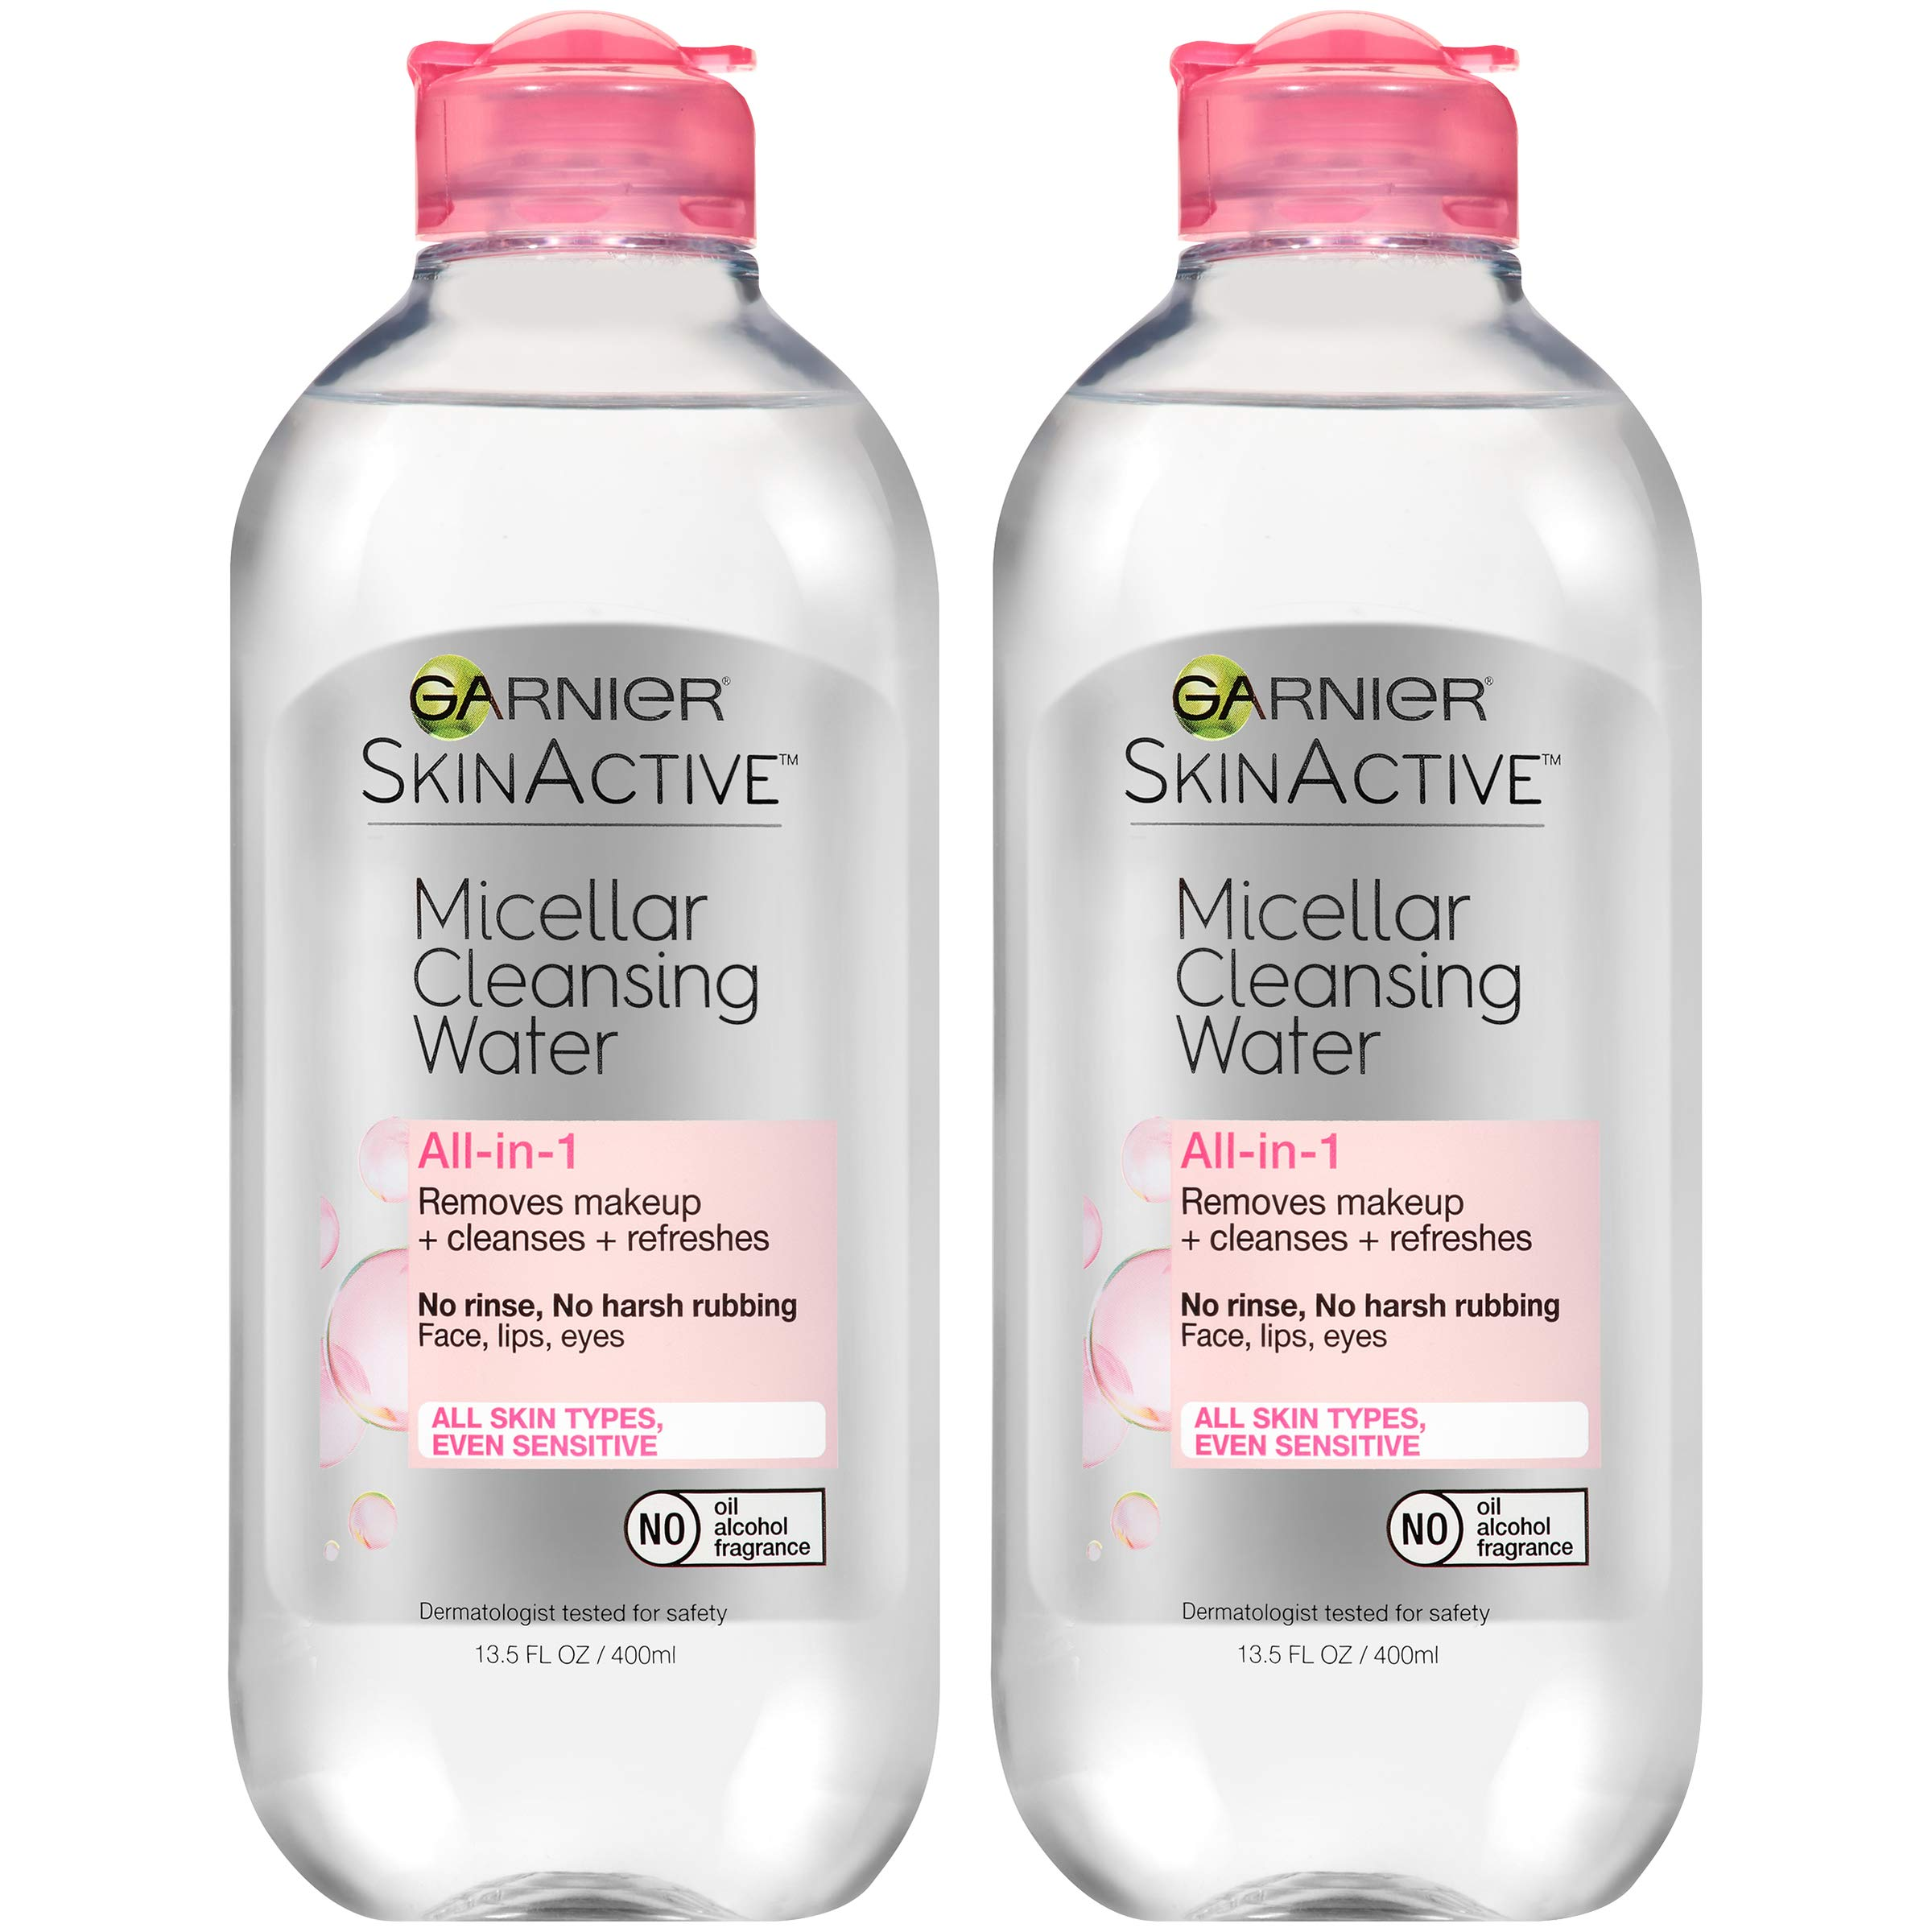 Garnier SkinActive Micellar Cleansing Water, All-in-1 Makeup Remover and Facial Cleanser, For All Skin Types, 13.5 fl oz, 2 Pack by Garnier